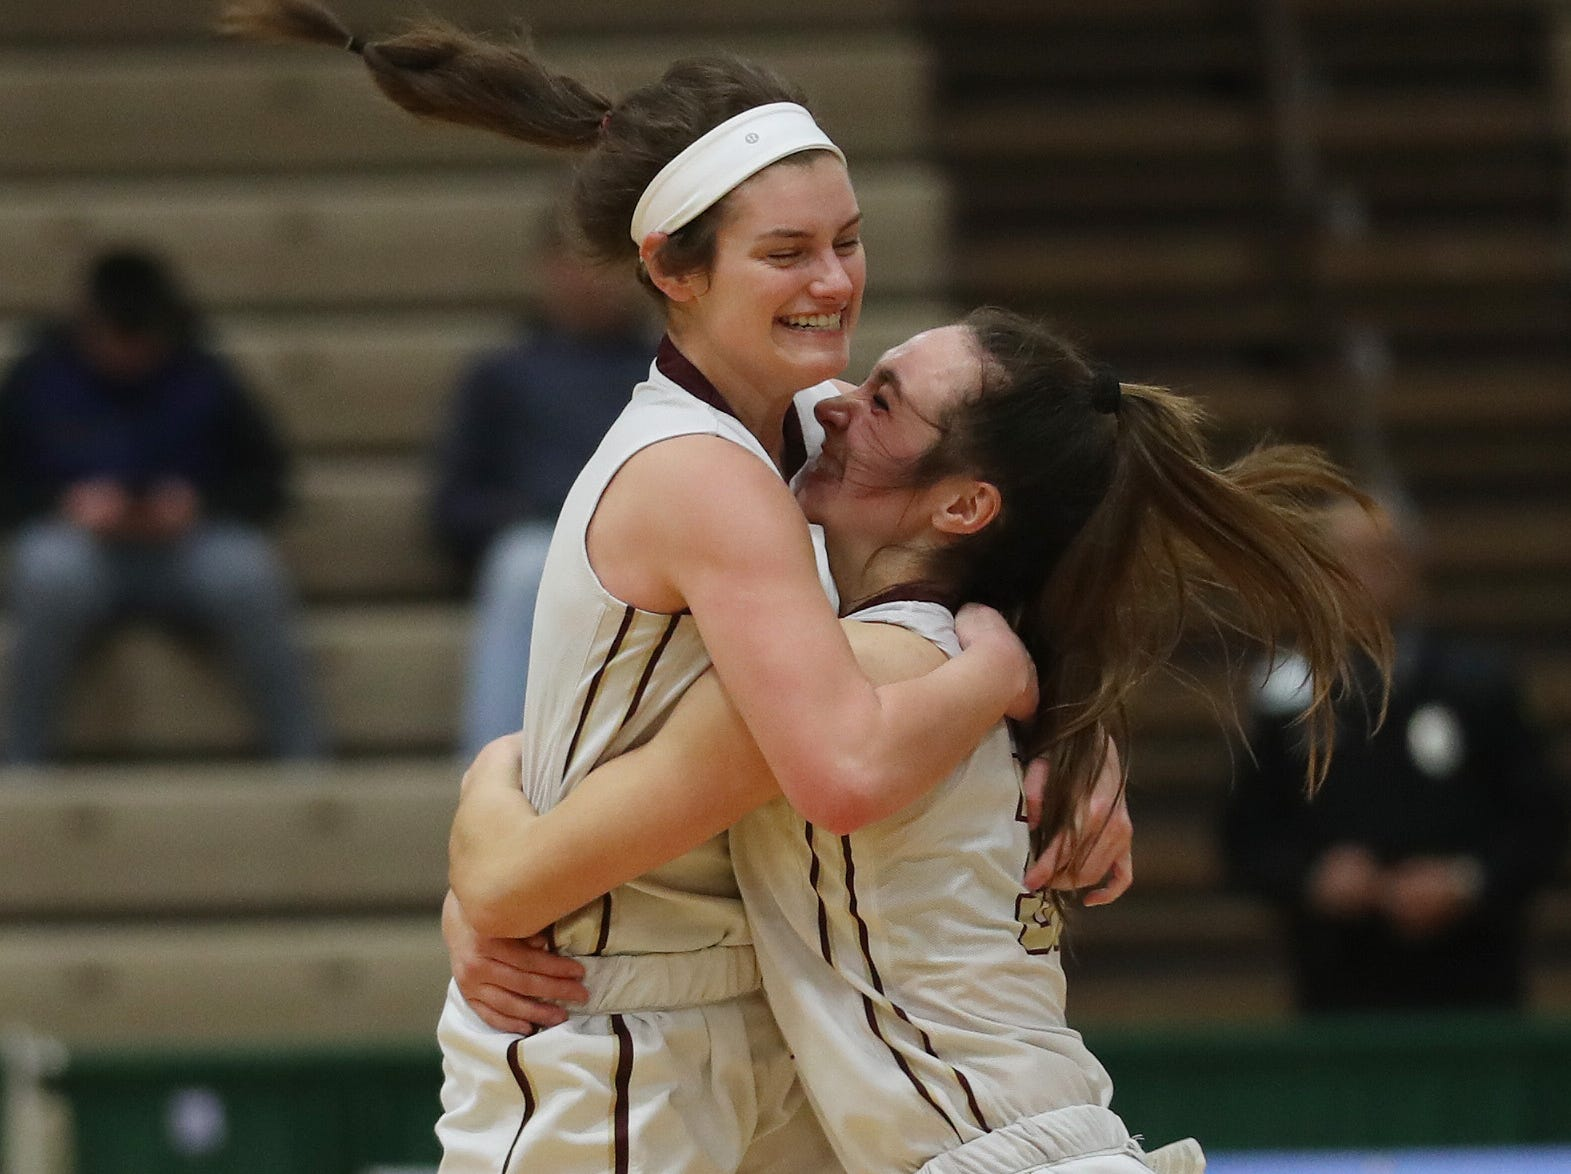 Pittsford Mendon's Katie Bischoping (31) and Ellie Mooney (3) celebrate their victory over  Jamesville-DeWitt in the girls Class A state semifinal at Hudson Valley Community College in Troy March 16, 2019. Pittsford Mendon won 44-32.